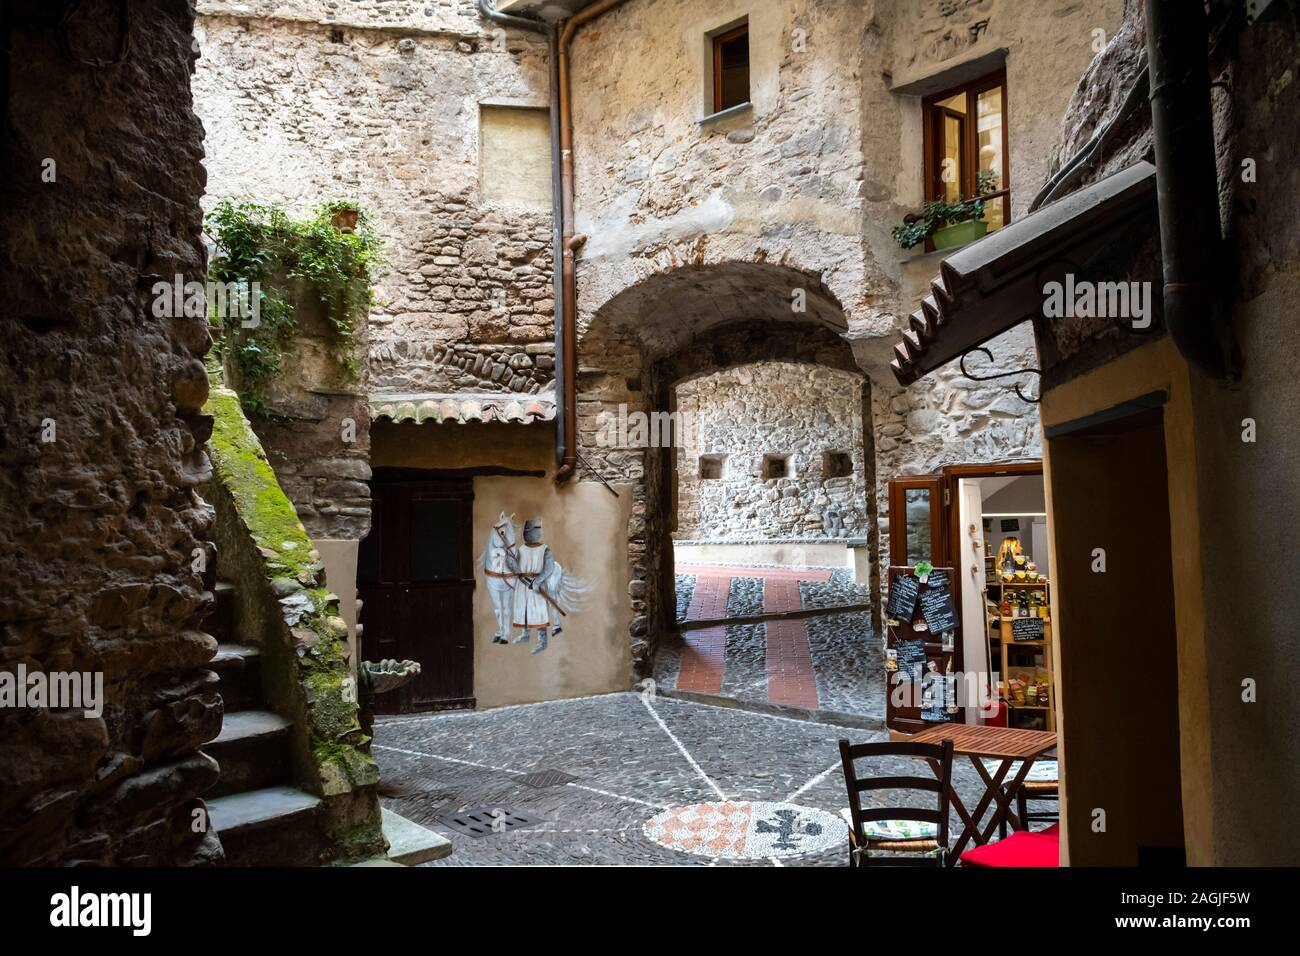 A picturesque courtyard with medieval knight images and gift shop in the ancient center of the medieval hilltop village of Dolceacqua, Italy Stock Photo